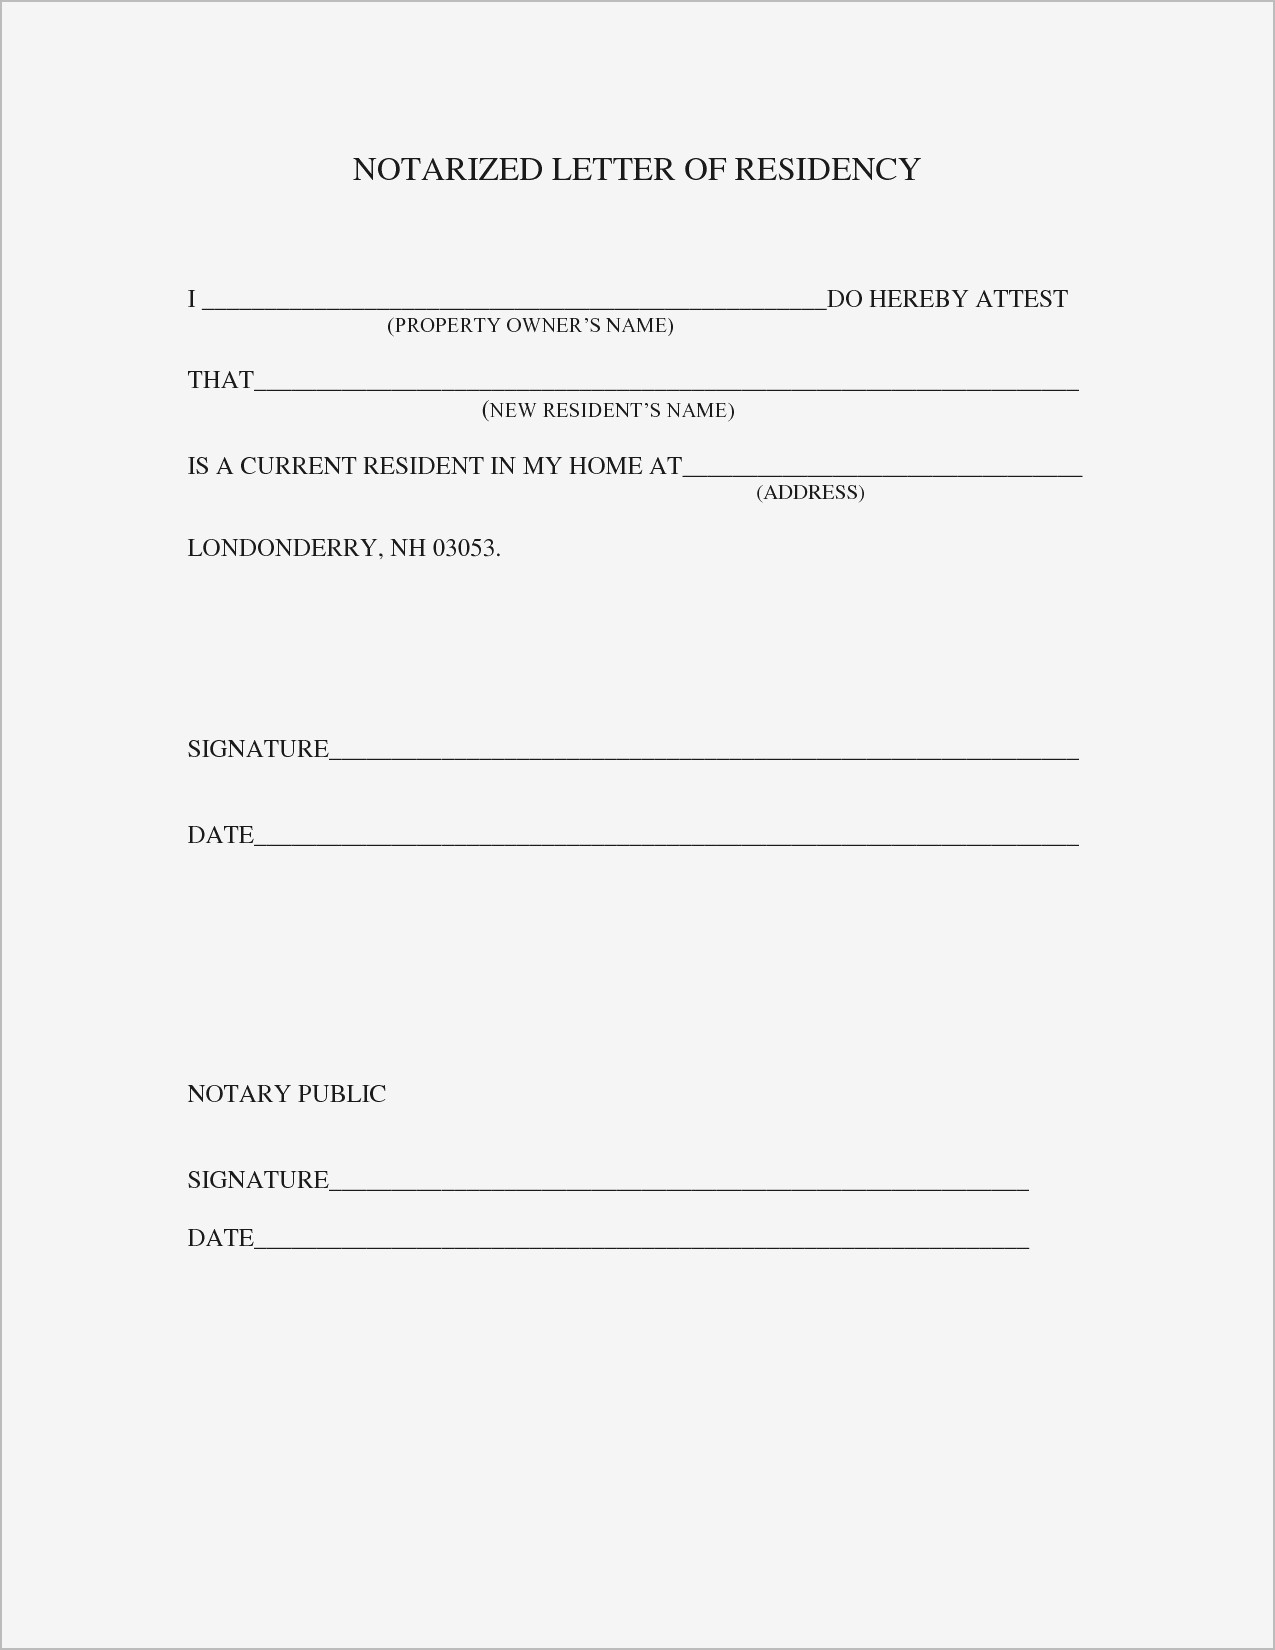 Proof Of Residency Letter Template Word - Proof Residency Letter Template Word Samples